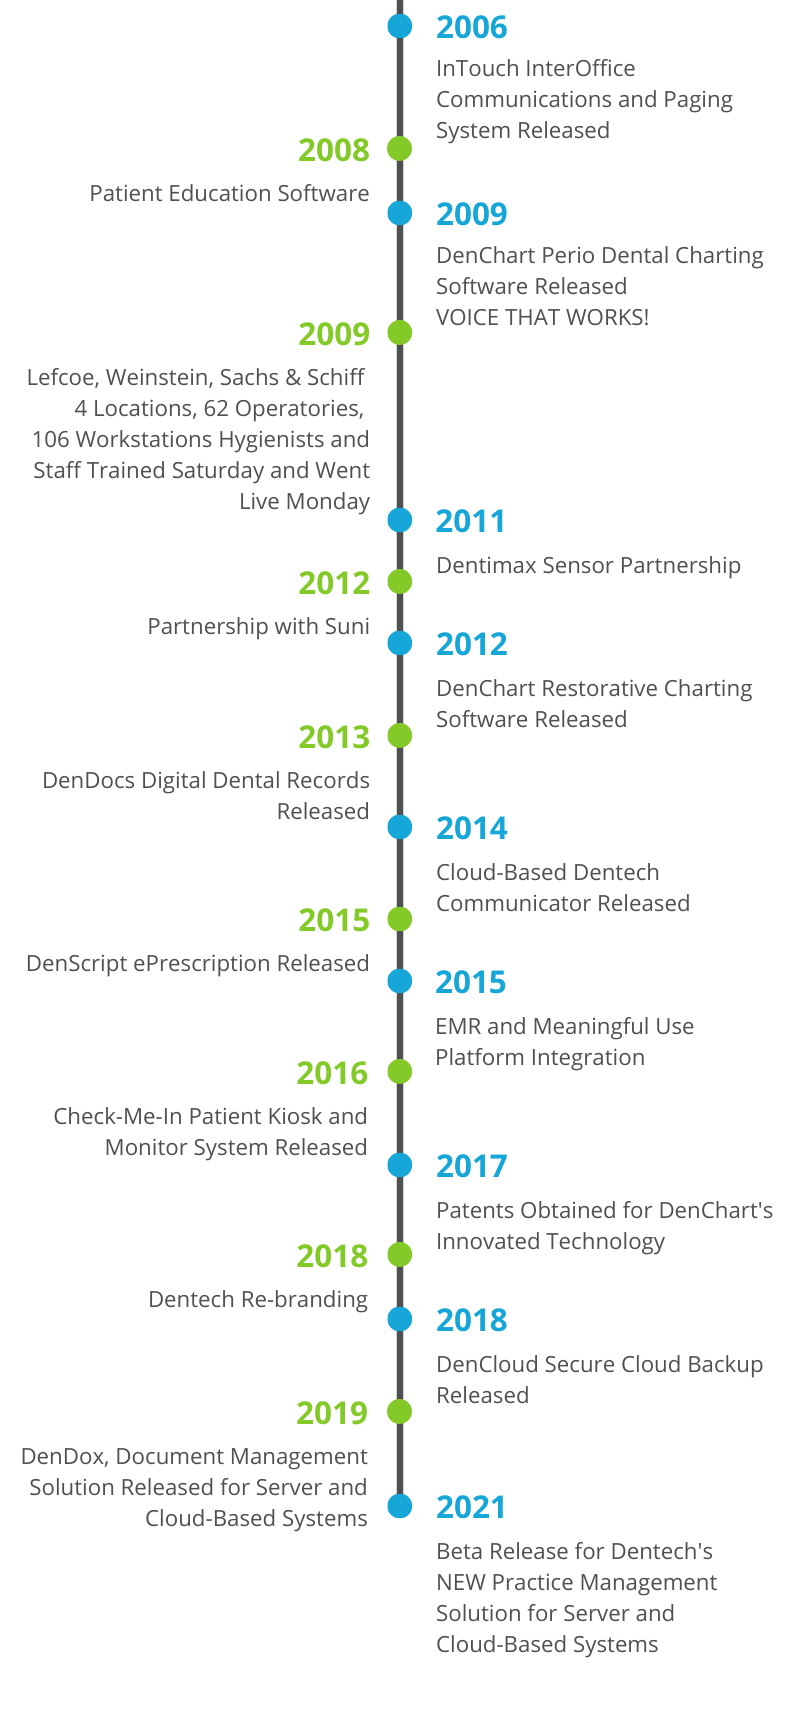 About Dentech Timeline 2006-2021